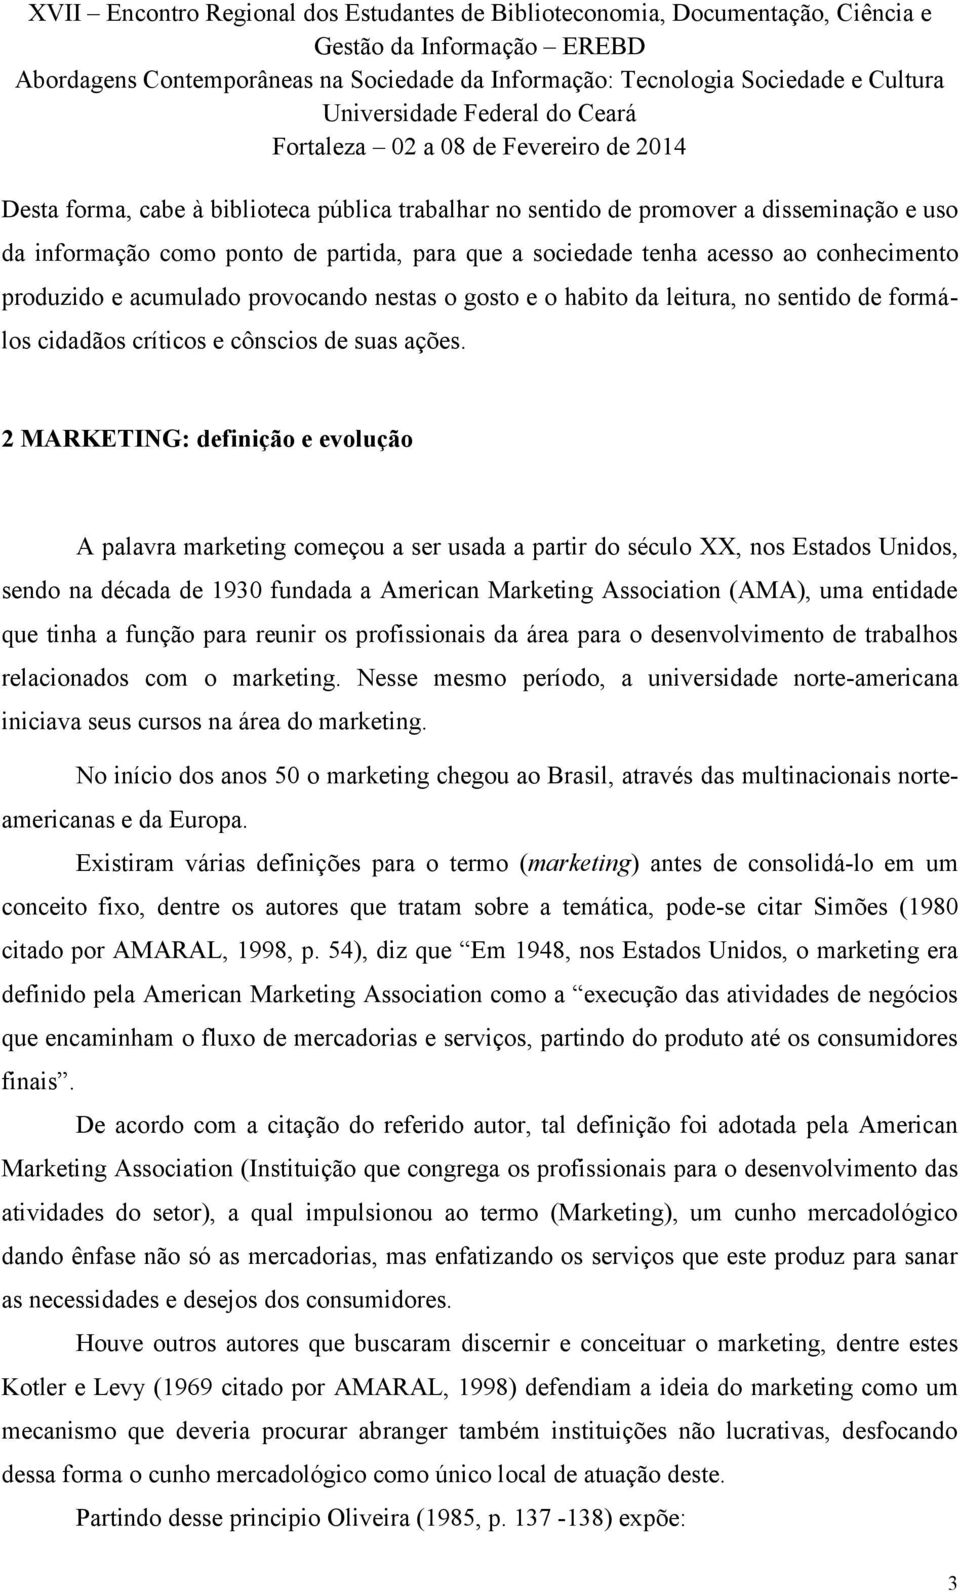 2 MARKETING: definição e evolução A palavra marketing começou a ser usada a partir do século XX, nos Estados Unidos, sendo na década de 1930 fundada a American Marketing Association (AMA), uma